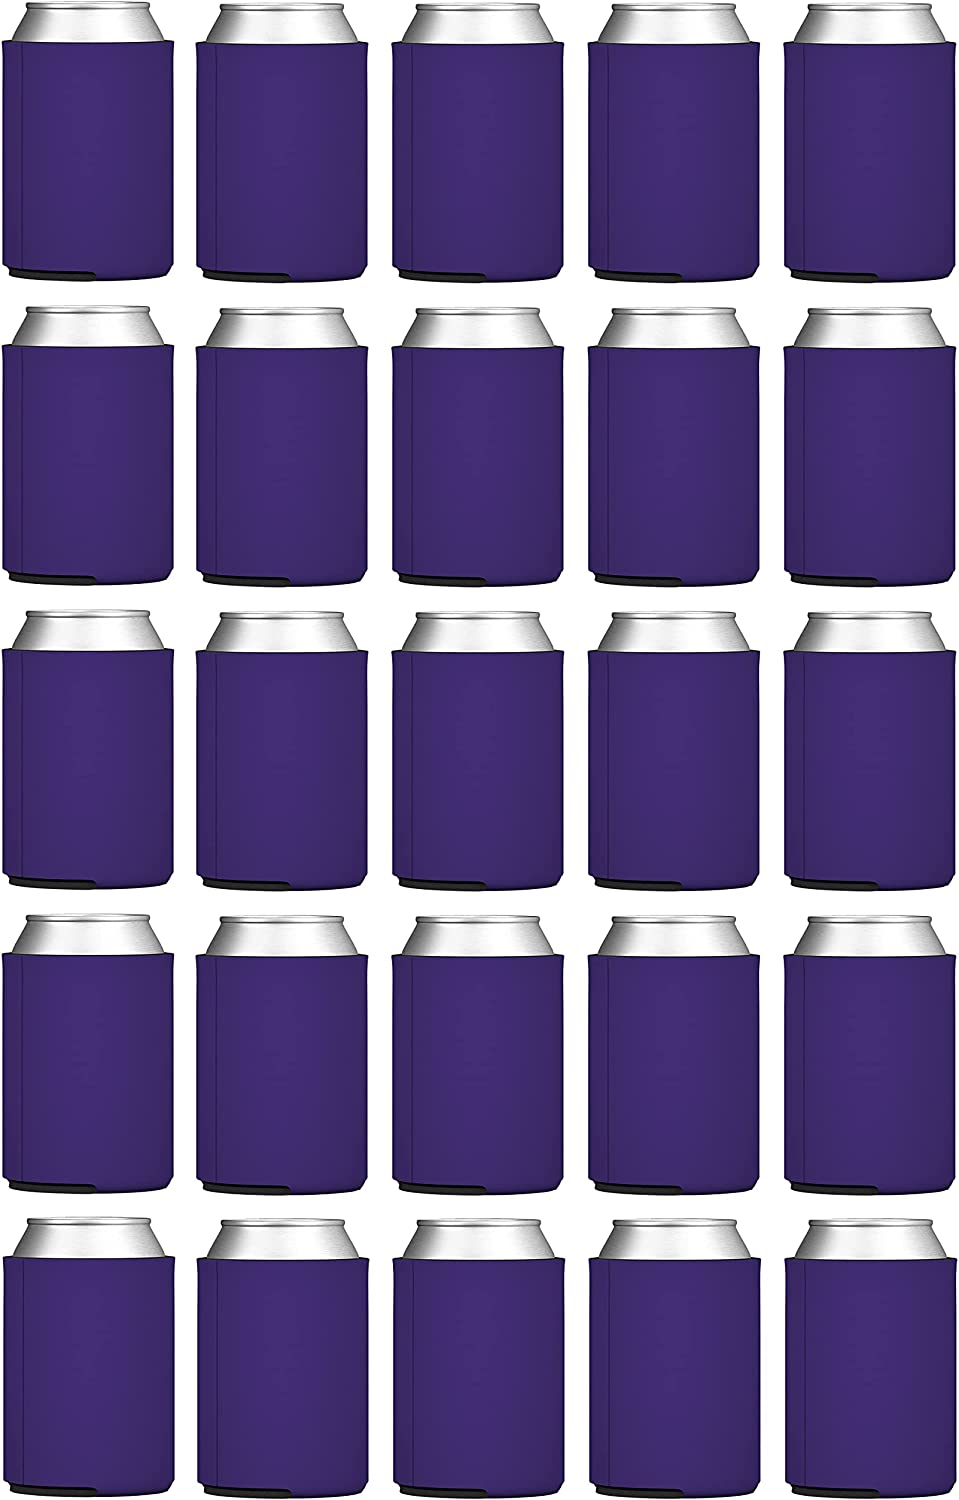 TahoeBay Blank Beer Can Coolers (25-Pack) Plain Bulk Collapsible Foam Soda Cover Coolies, Personalized Sublimation Sleeves for Weddings, Bachelorette Parties, HTV Projects (Purple)